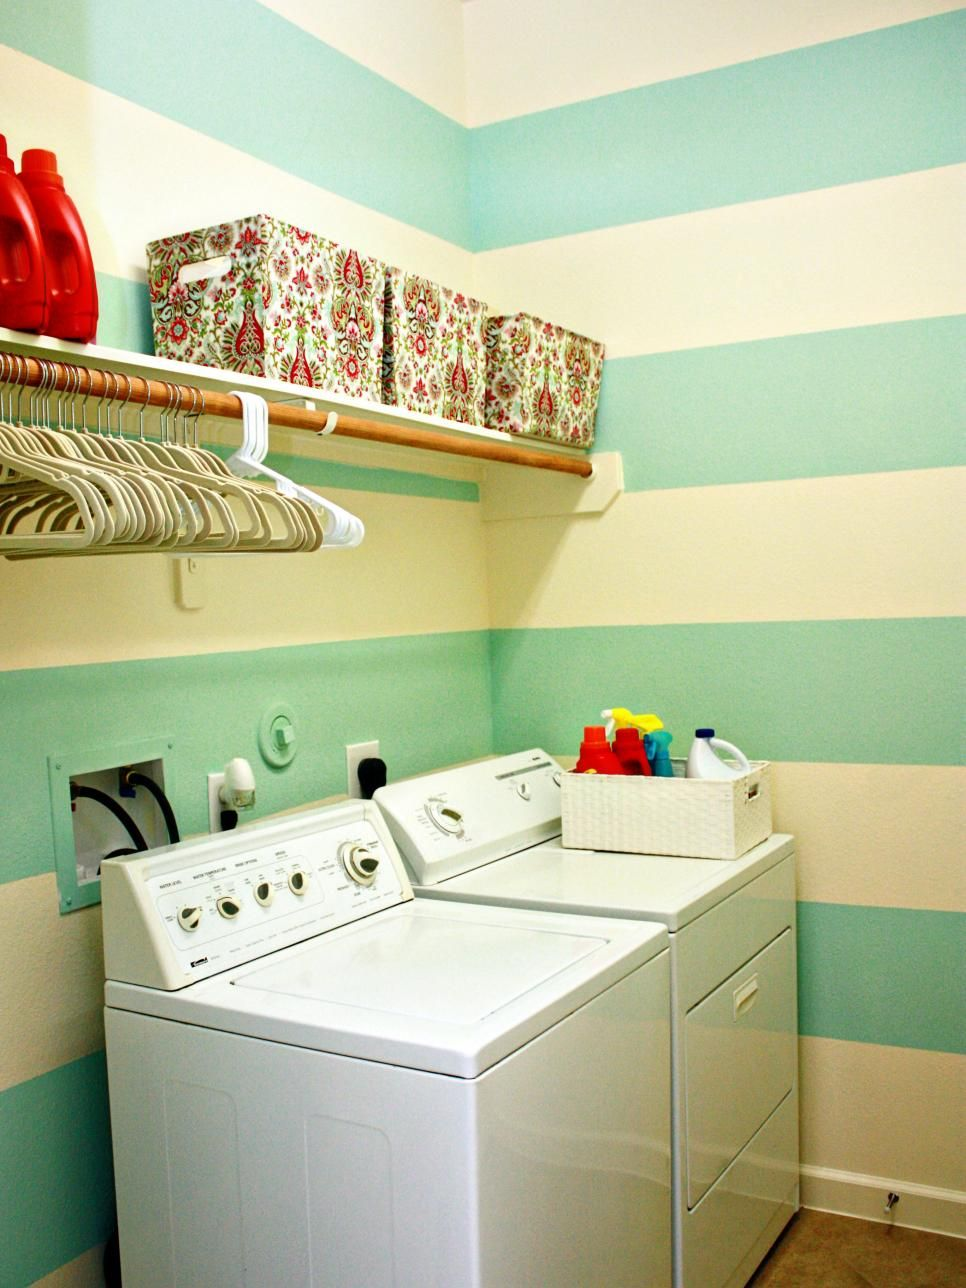 Quick Tips for Organizing Laundry Rooms | Laundry rooms, Laundry and ...